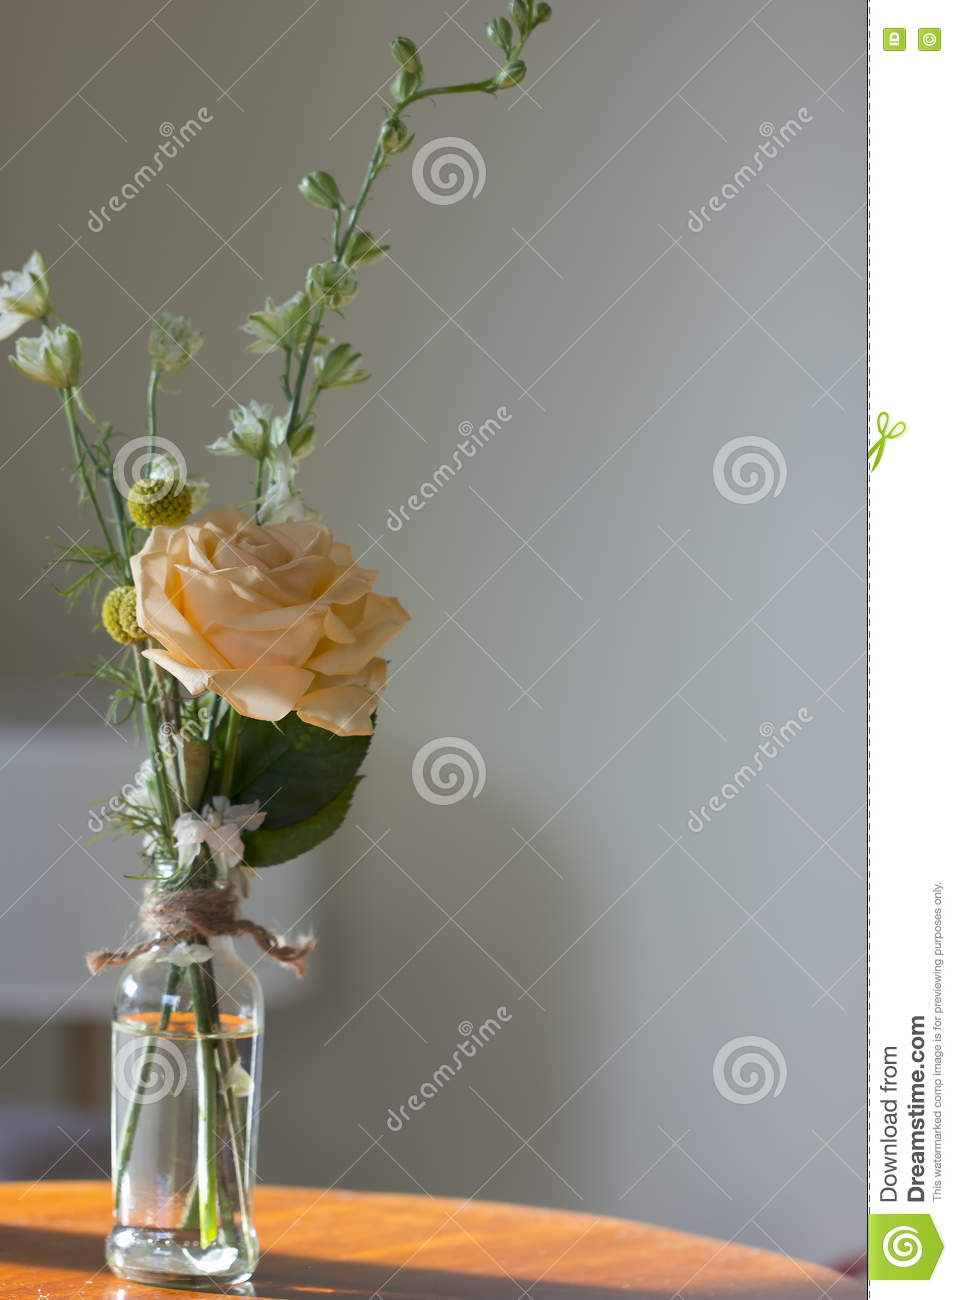 Jam Jar Flowers Stock Photo Image Of Bottle Homemade 75159436